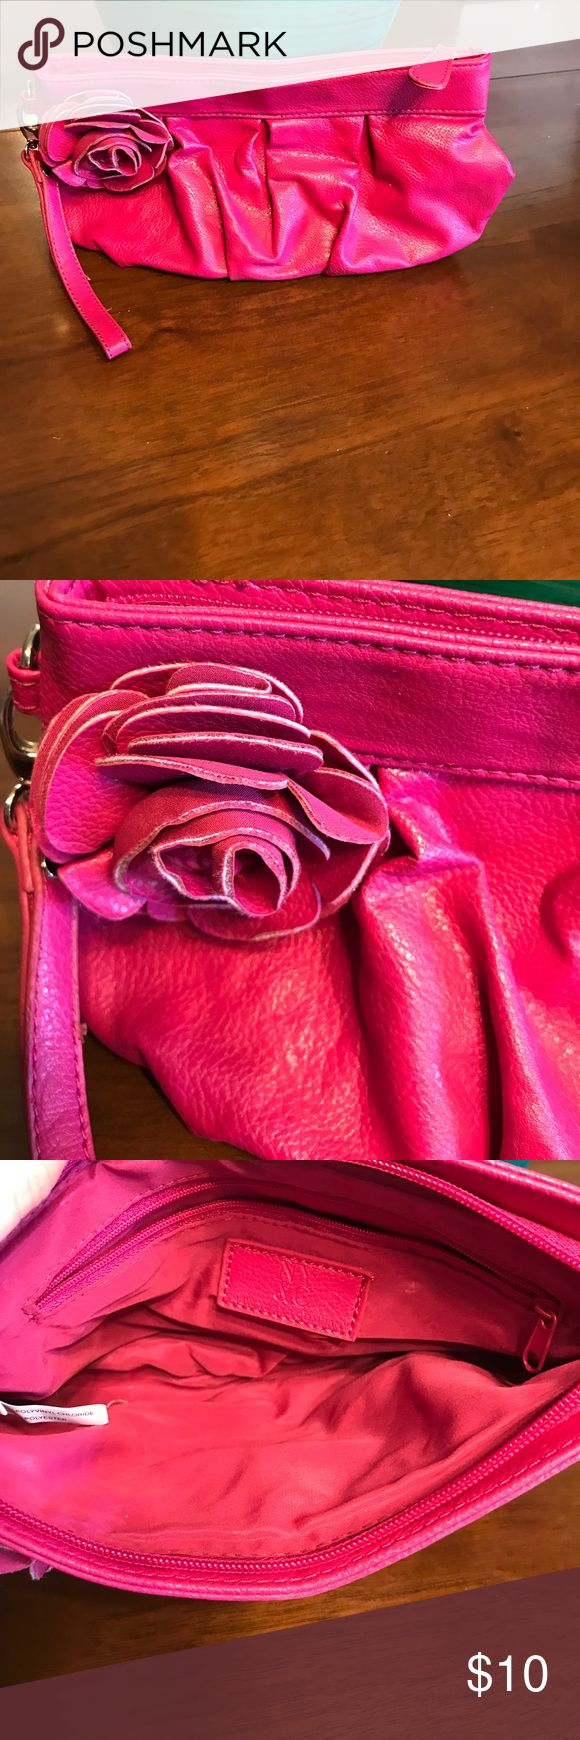 NY&CO PINK CLUTCH BAG Super cute hot pink color!! Some marks on bottom of bag as shown in photo. Very soft! New York & Company Bags Clutches & Wristlets